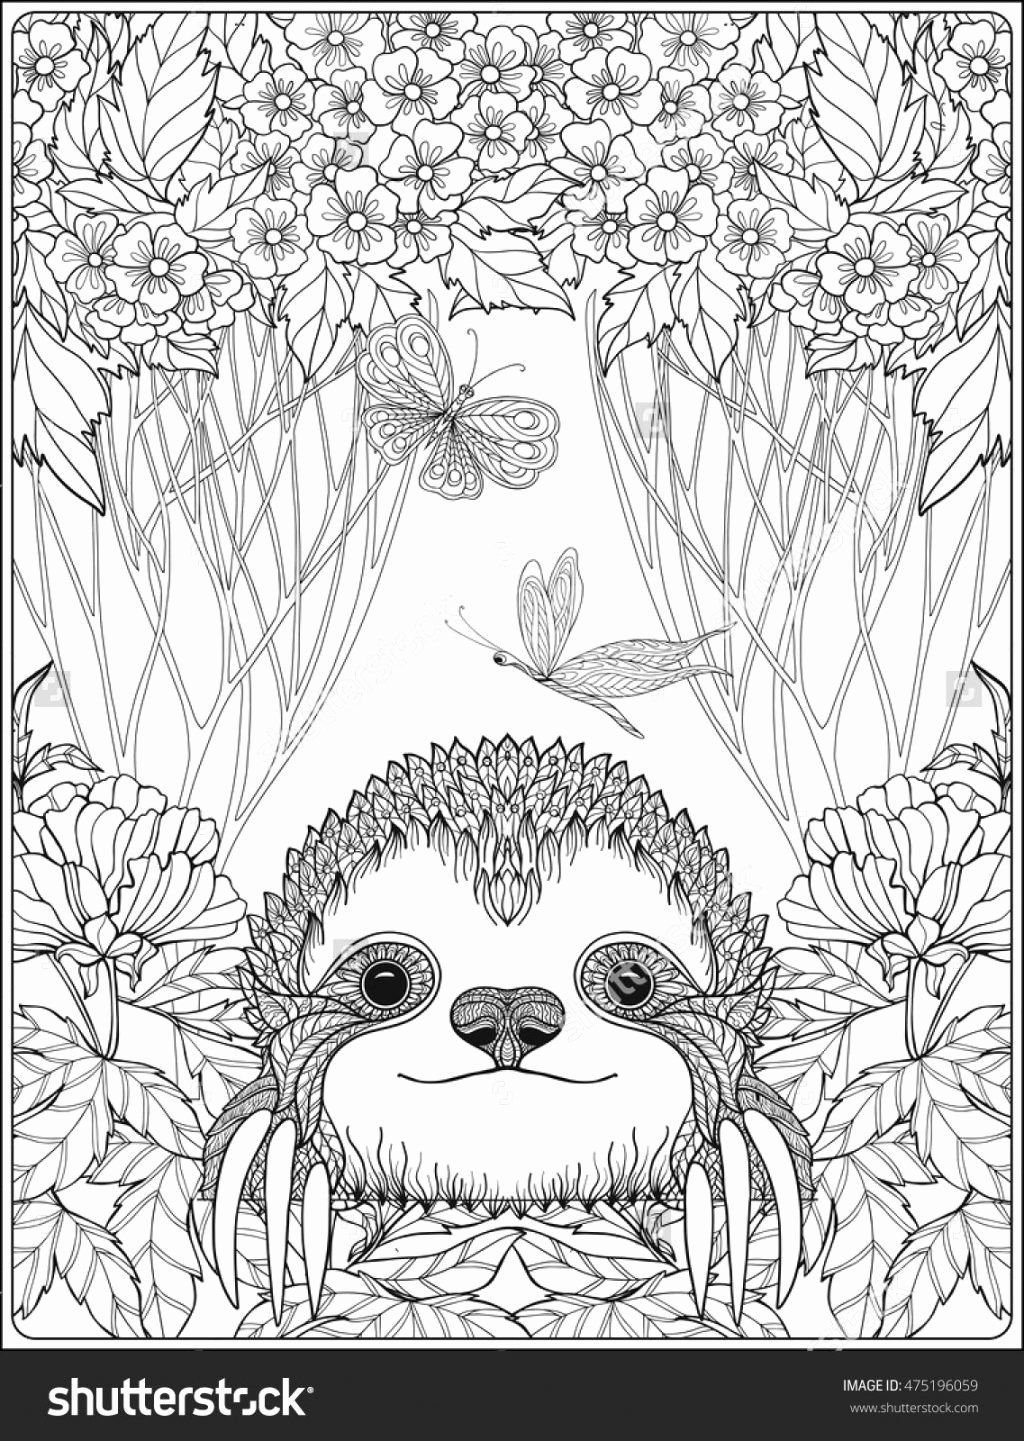 Coloring Pages Animals National Geographic In 2020 Animal